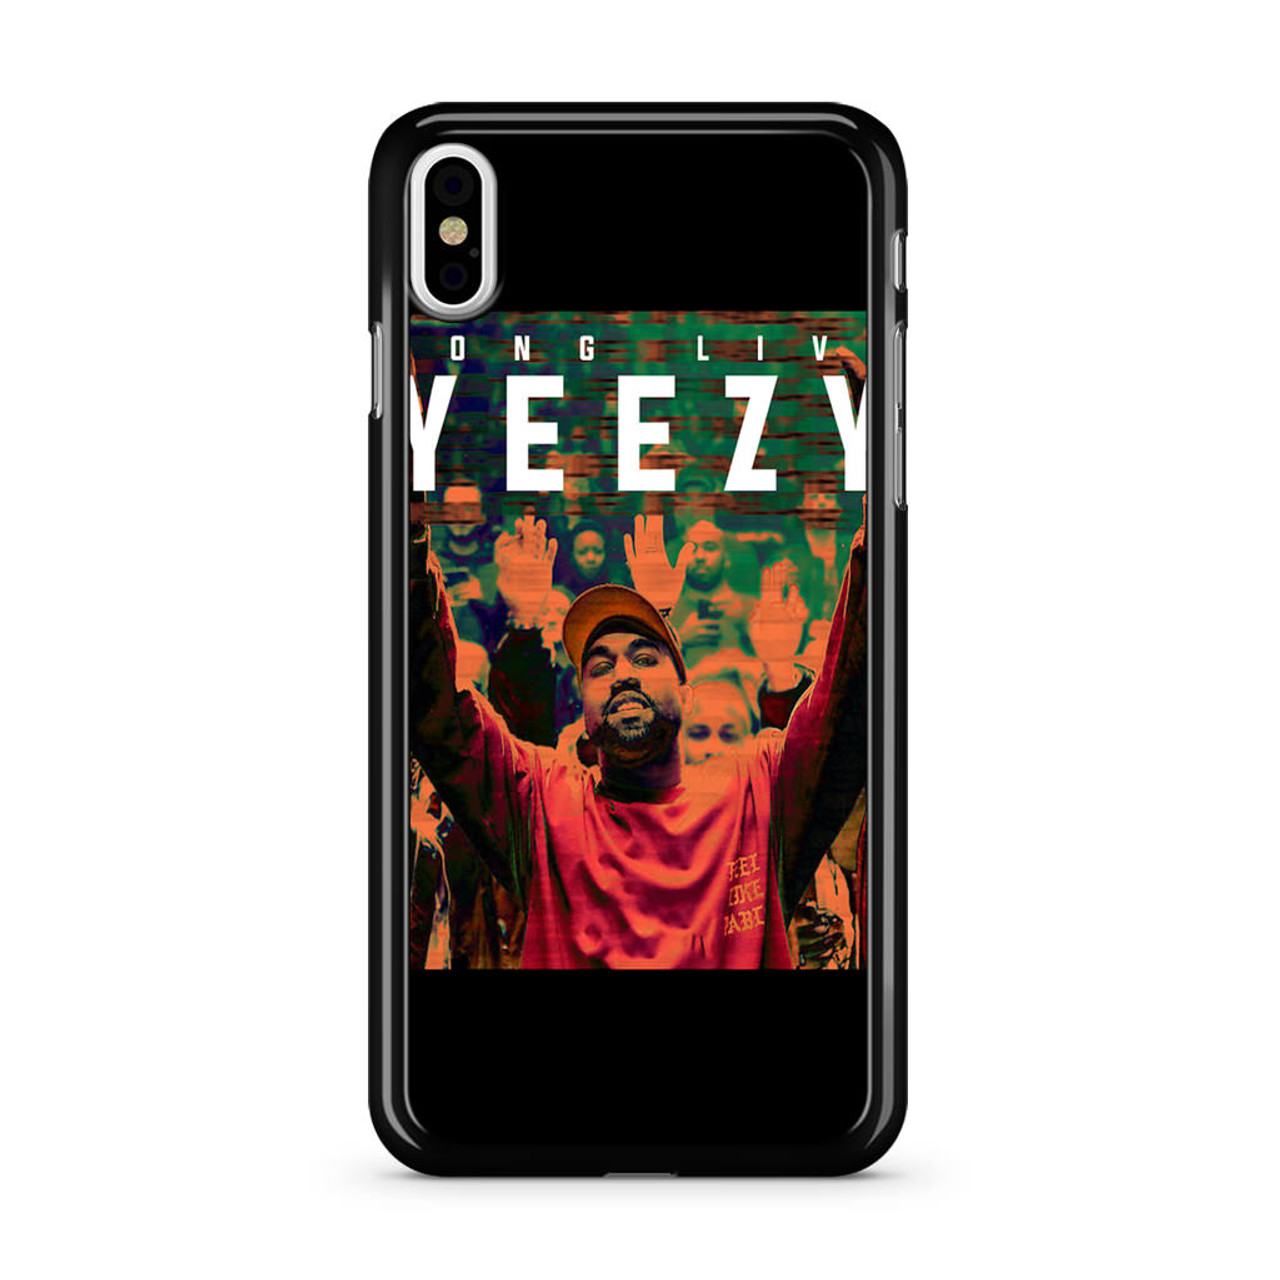 818eb9d3b49ade Kanye West Yeezy iPhone XS Max Case - Jocases